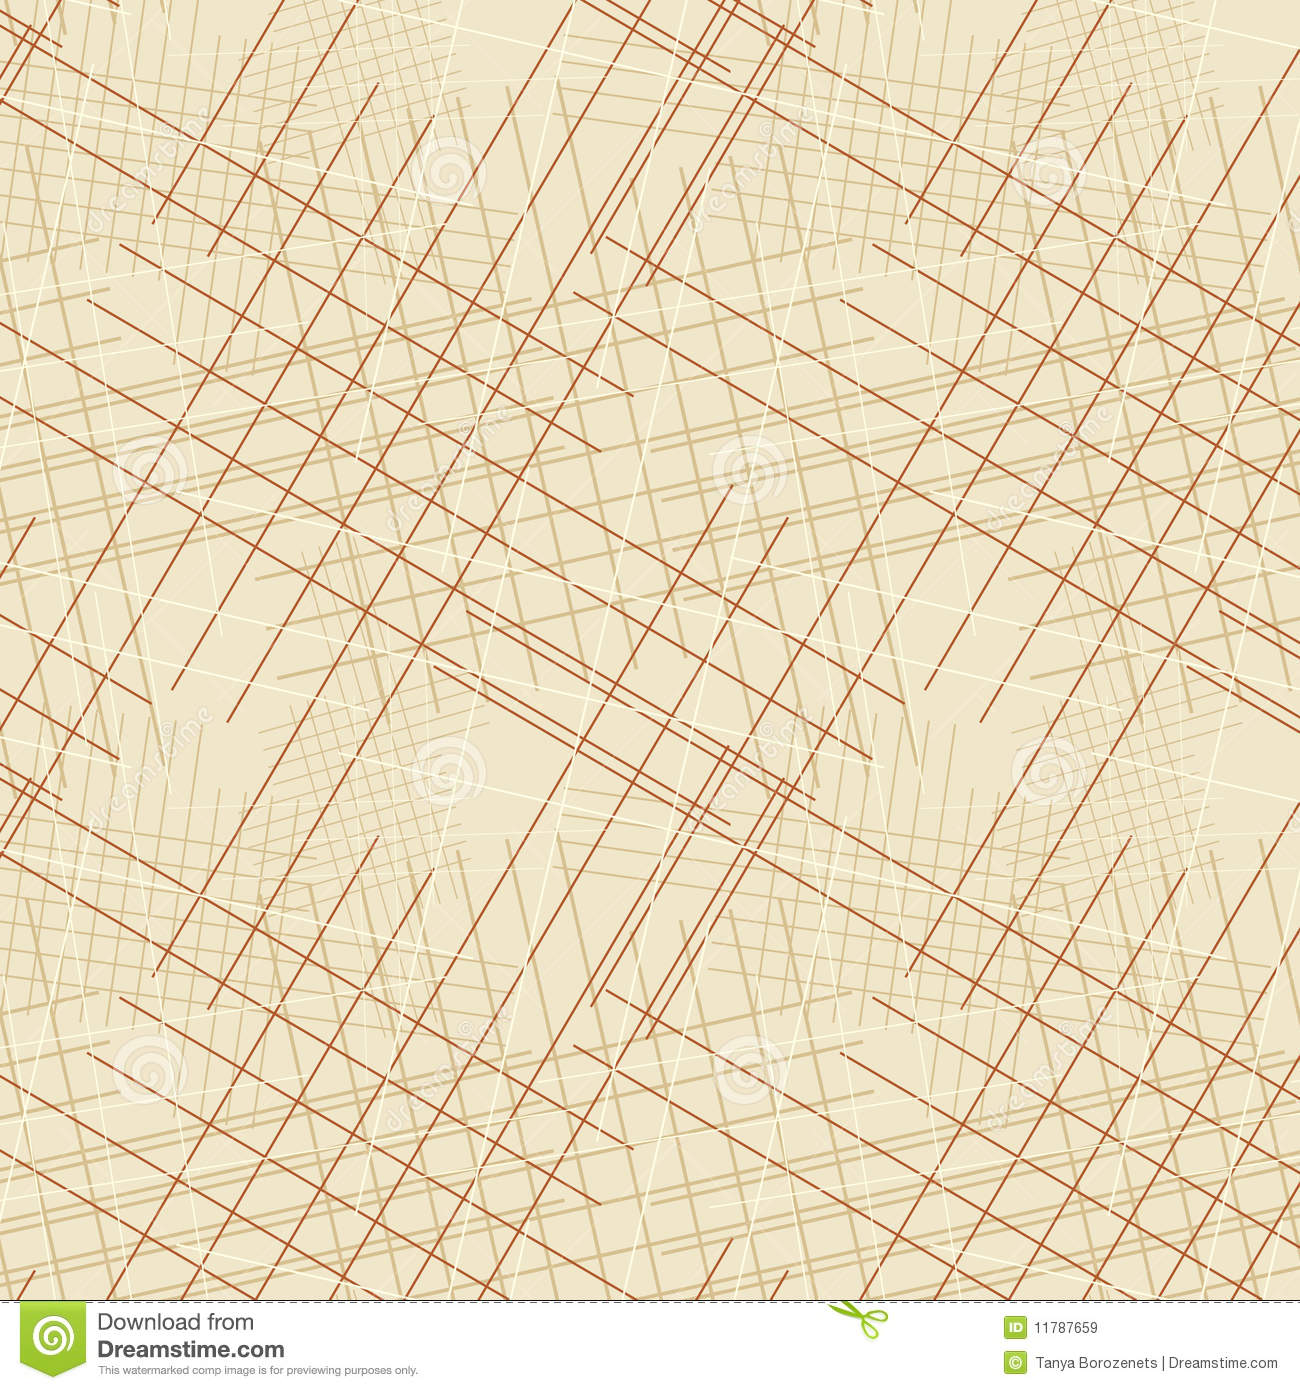 Line Texture Images : Line texture royalty free stock images image